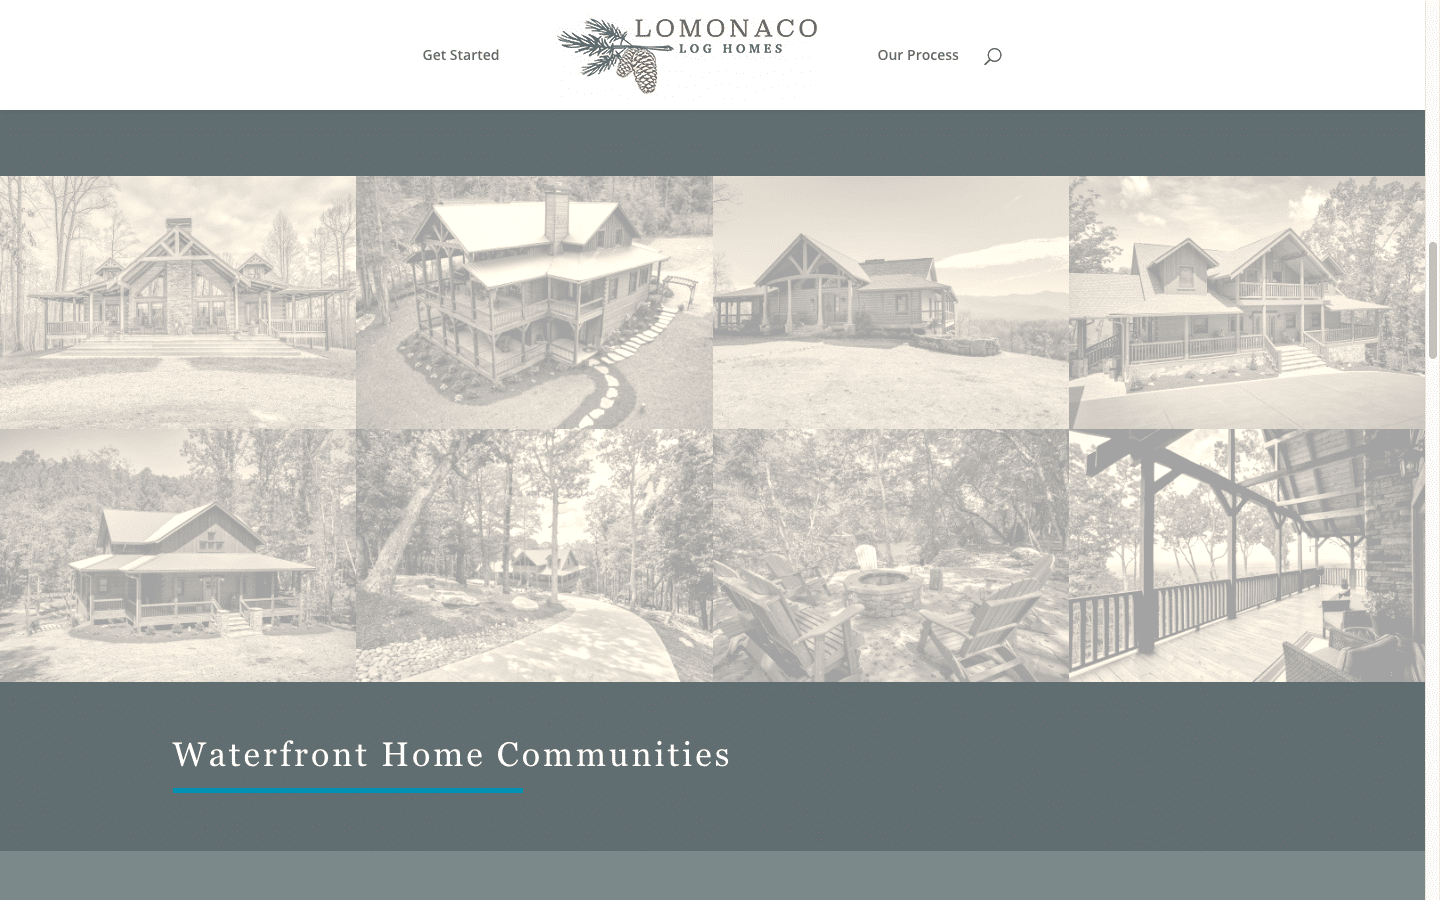 portfolio of log homes